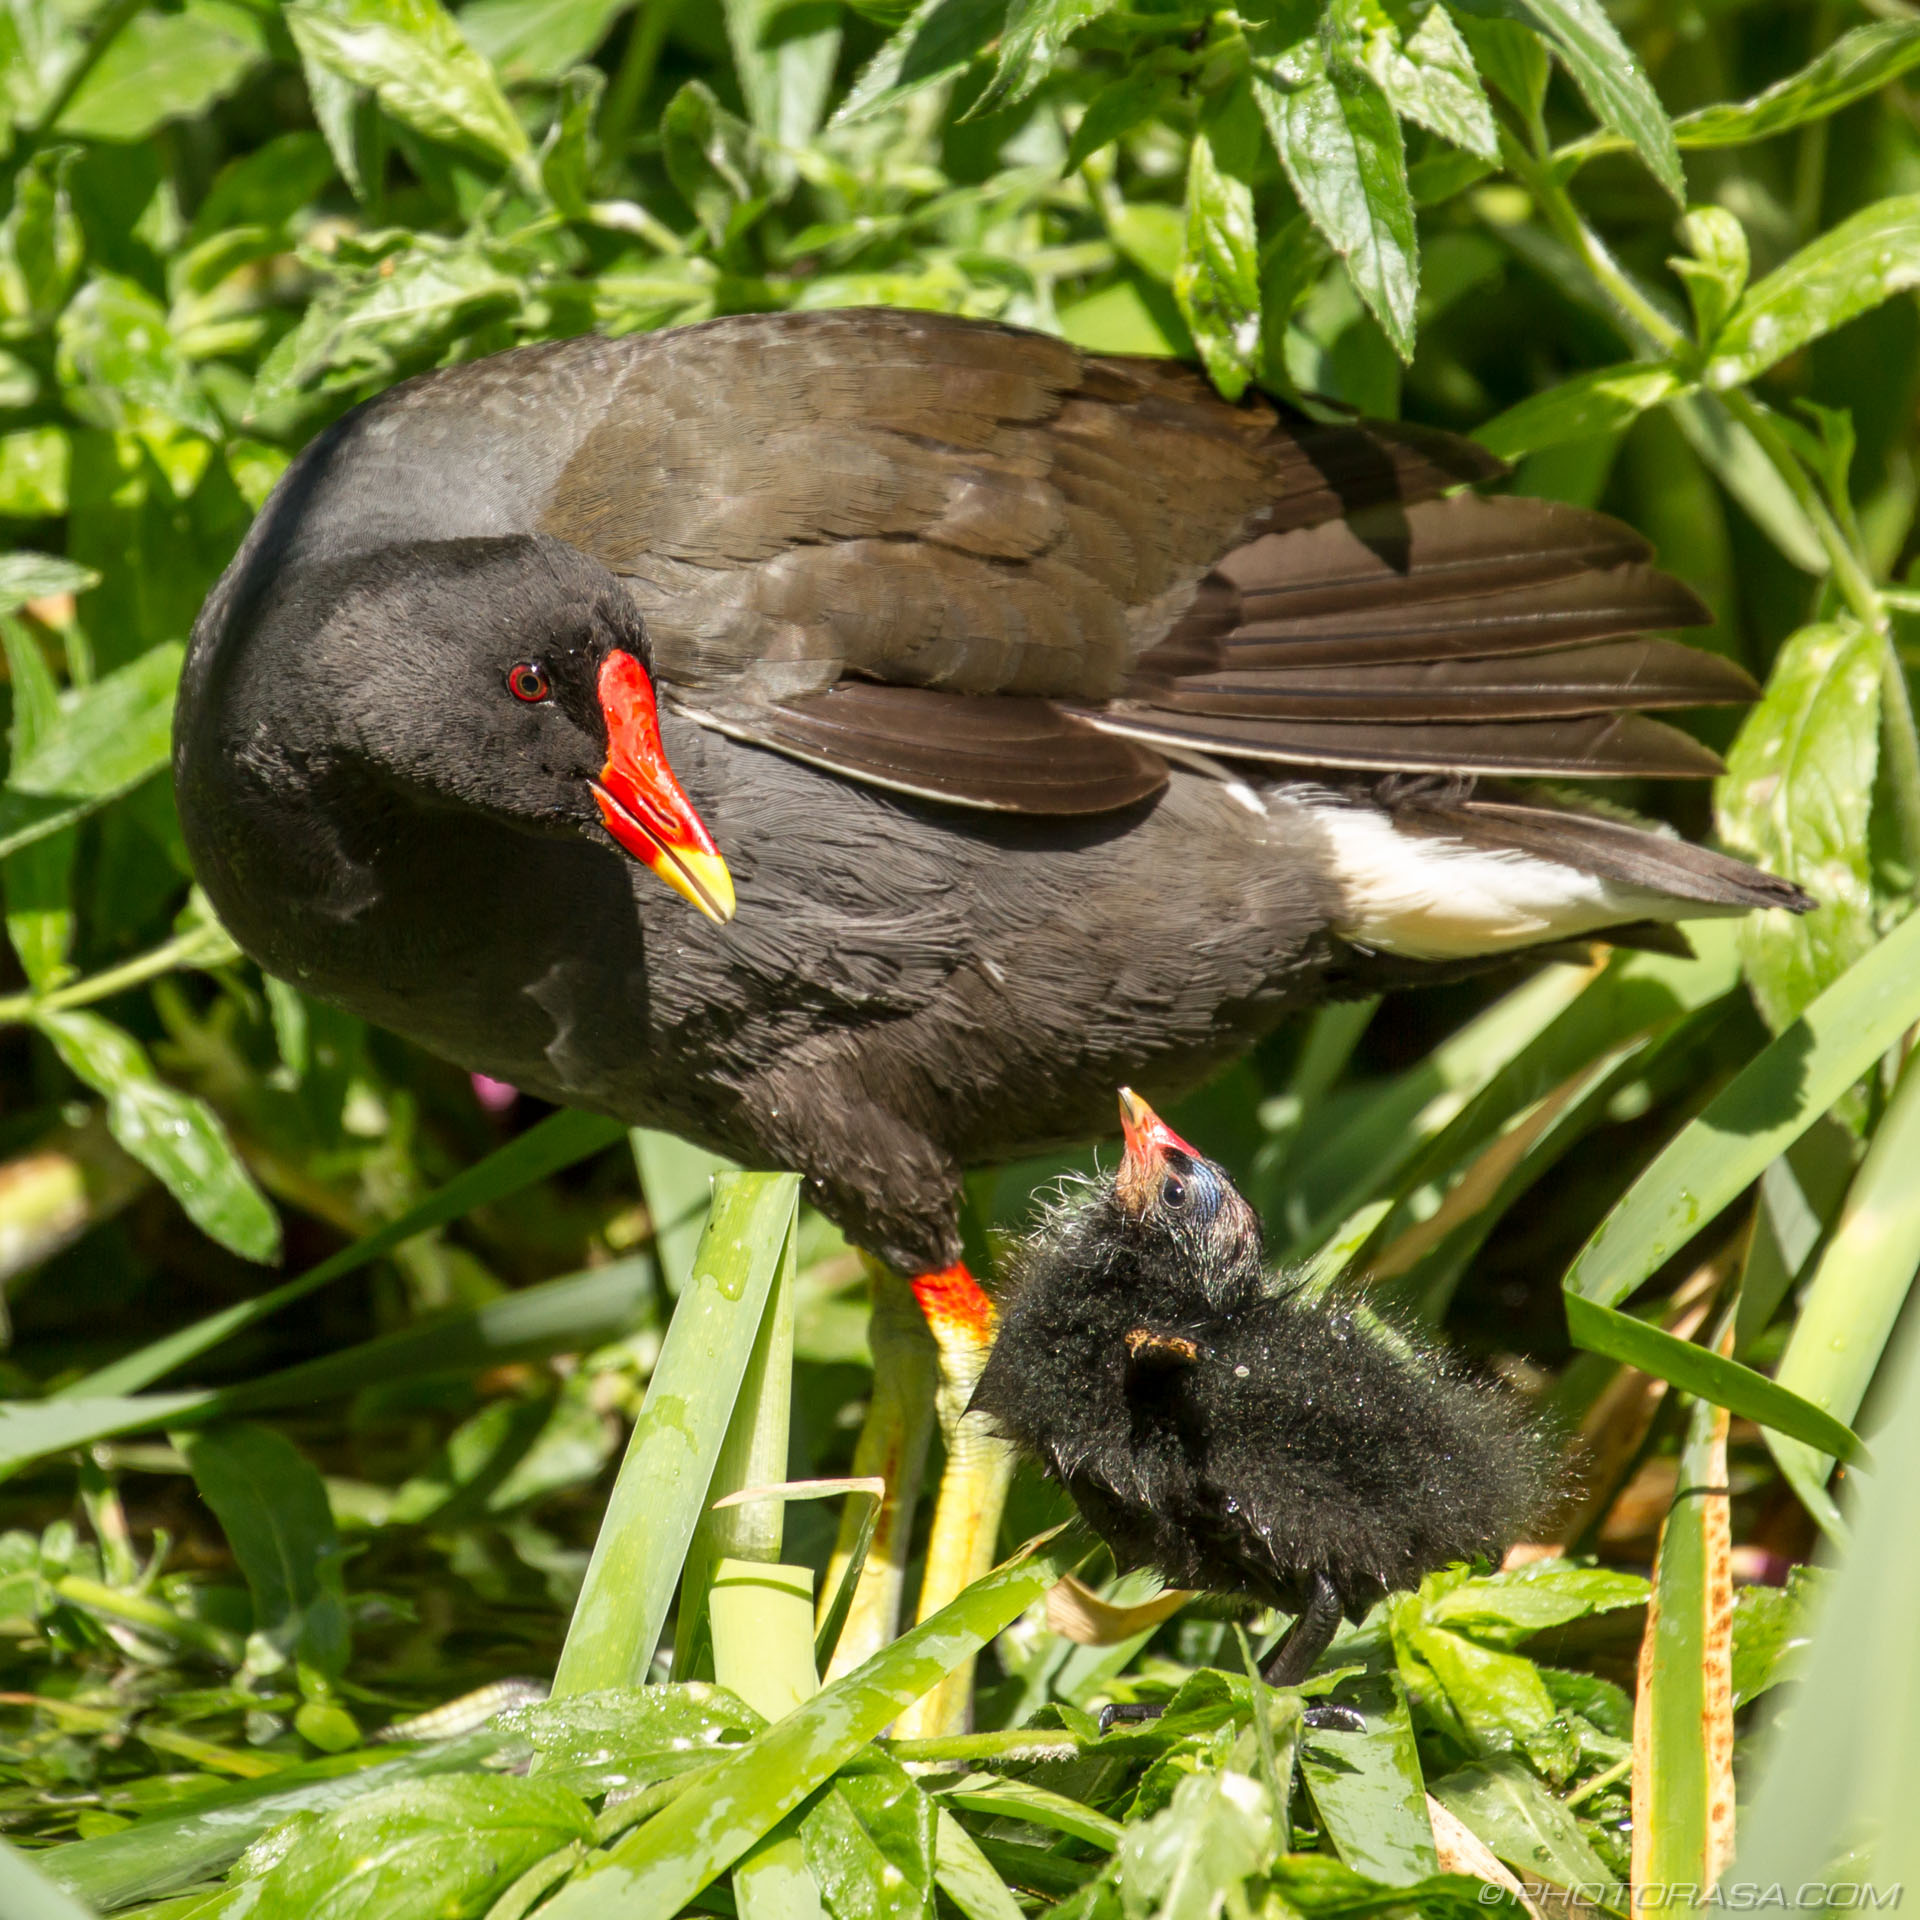 https://photorasa.com/baby-moorhen-and-mother/chick-calling-to-mother/